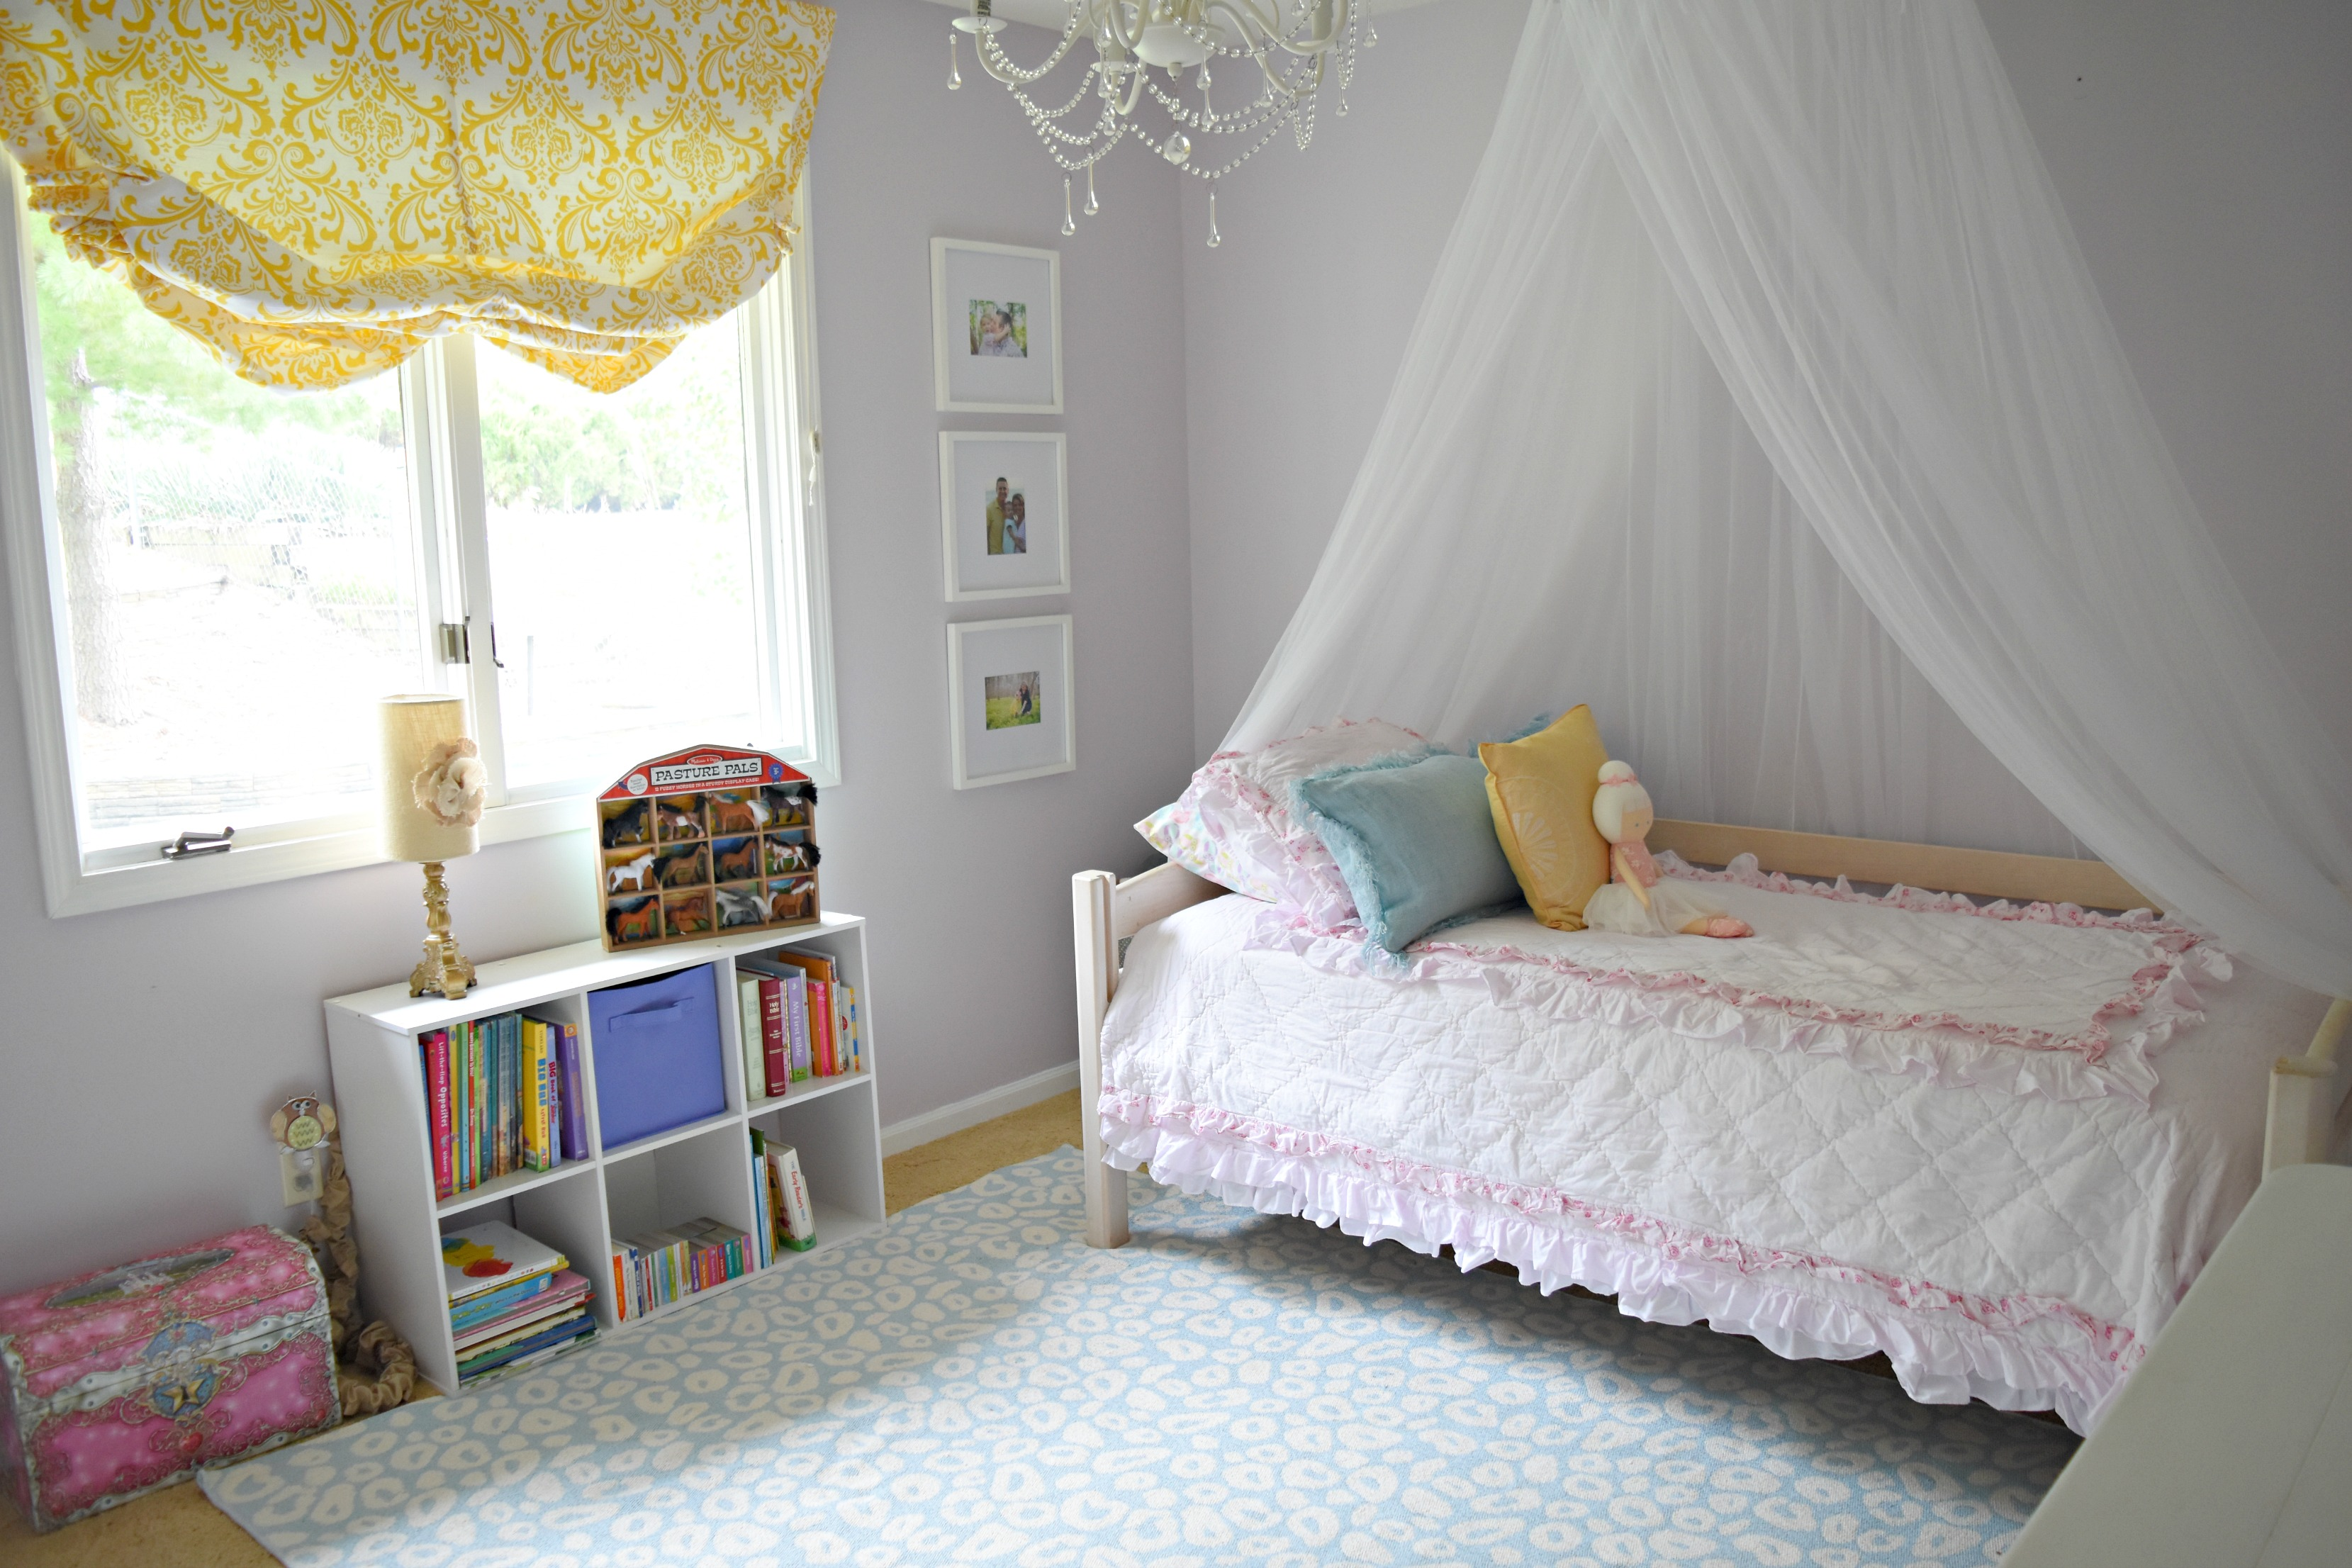 Bedroom for a 3 Year Old Girl: Hadley\'s Completed Big Girl Room